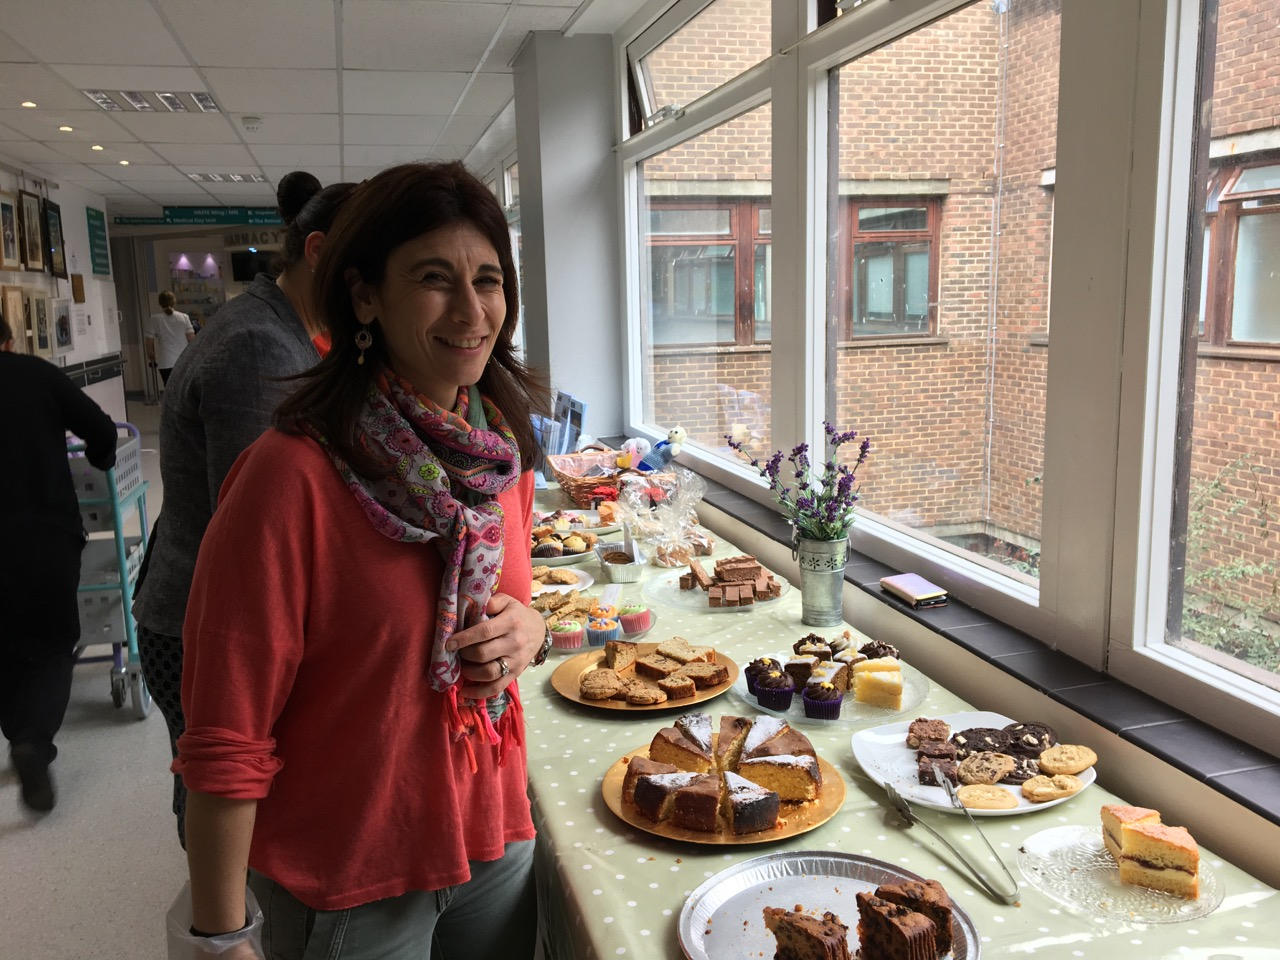 GRACE volunteer at the Cake Sale for Ovarian Cancer Awareness at the Royal Surrey County Hospital